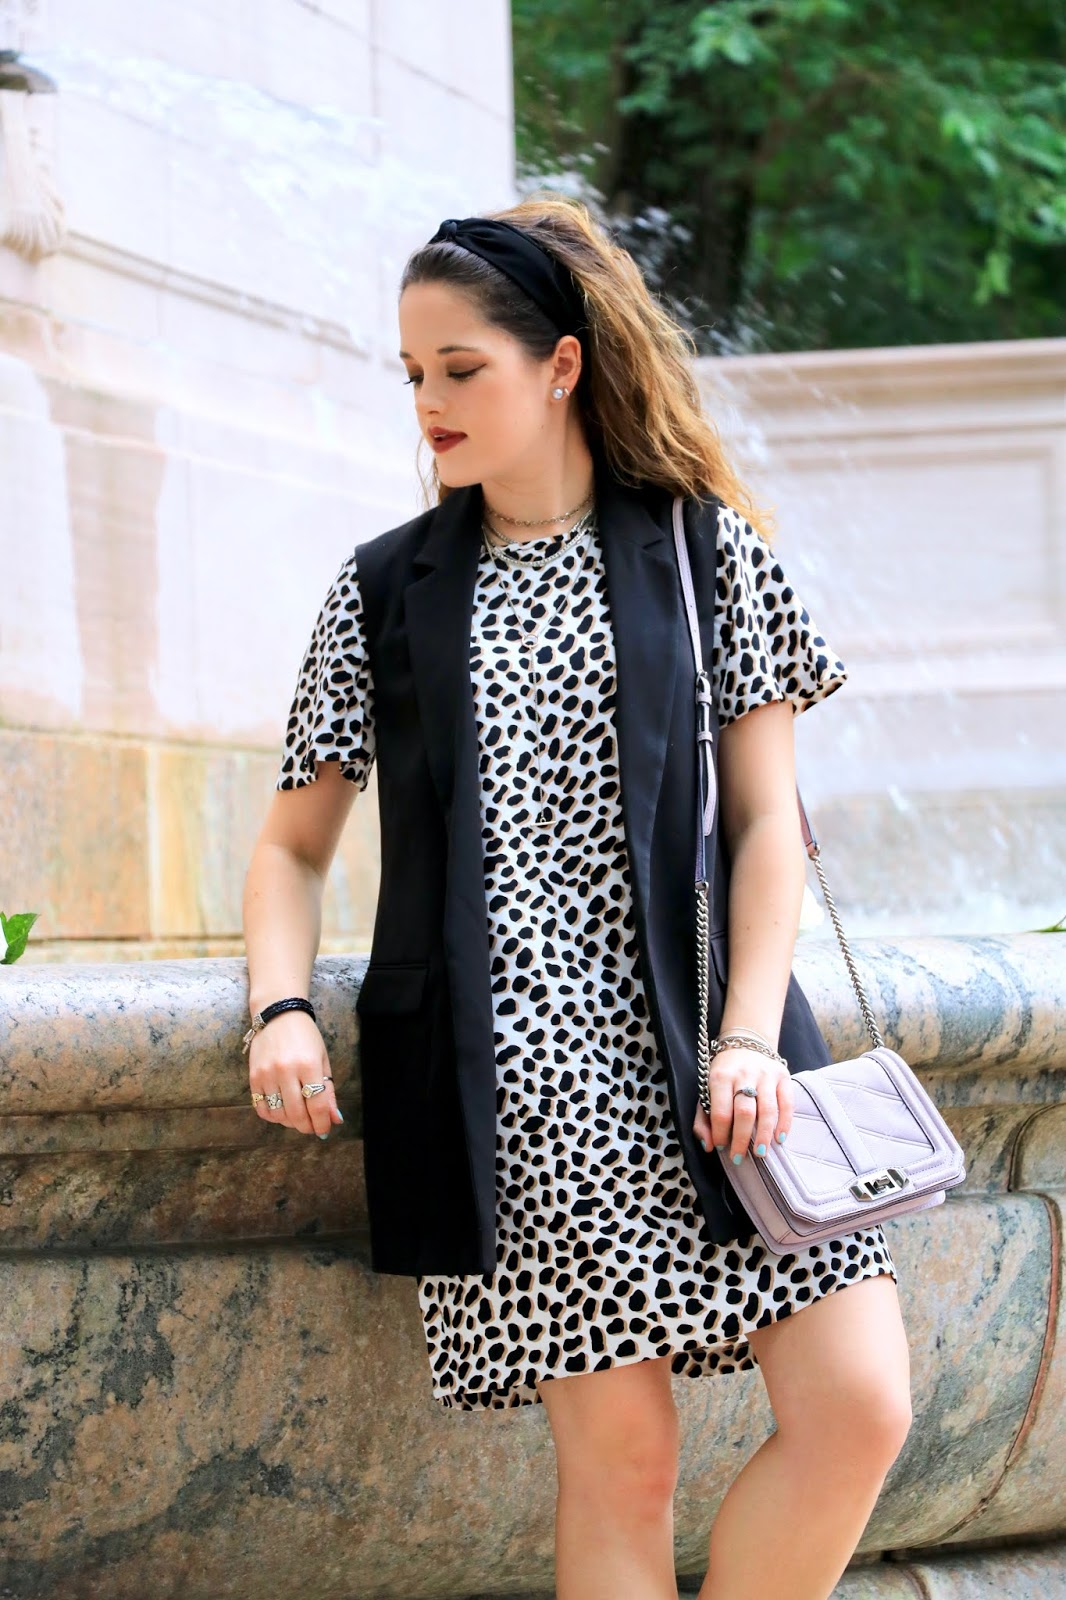 Nyc fashion blogger Kathleen Harper wearing a leopard dress in fall 2018